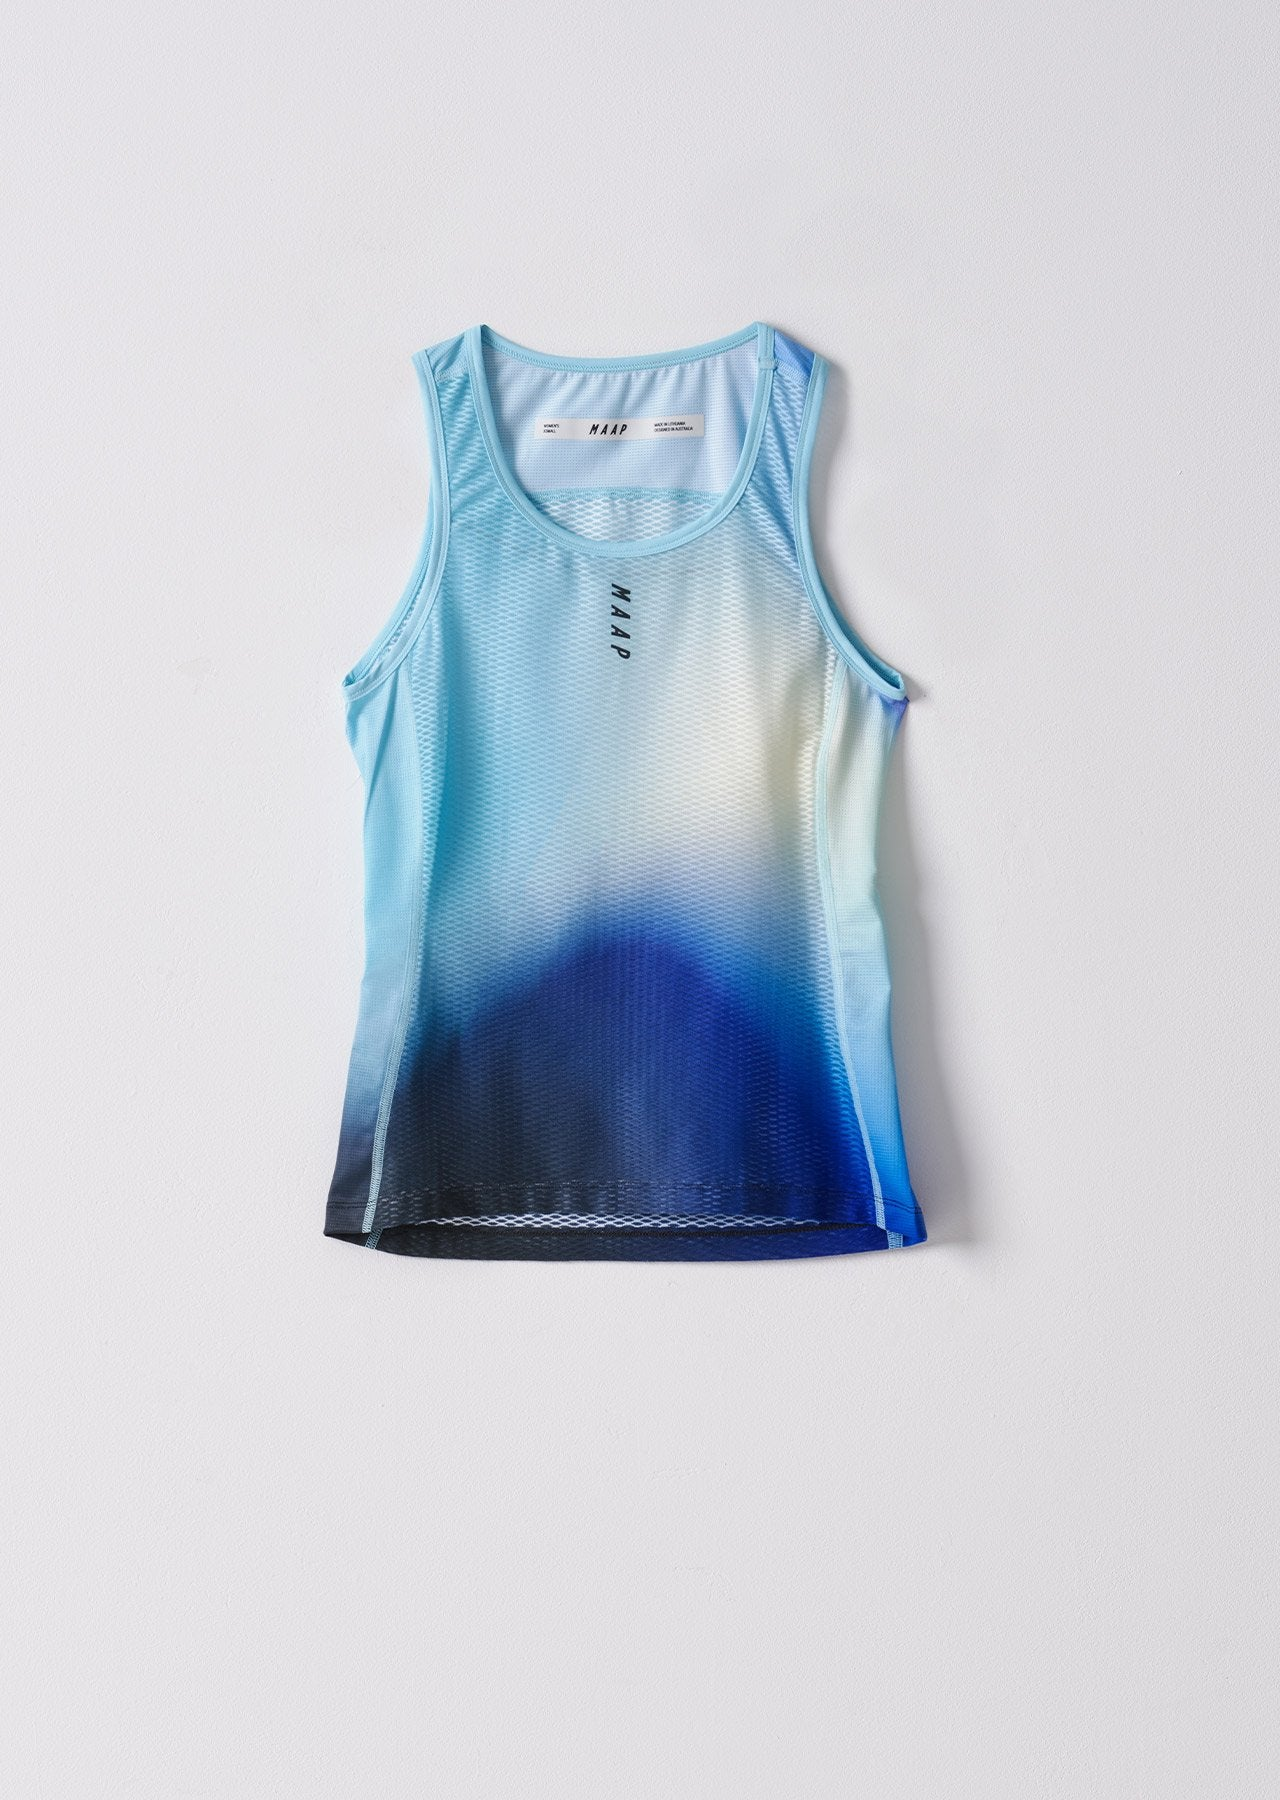 Women's Flow Team Base Layer